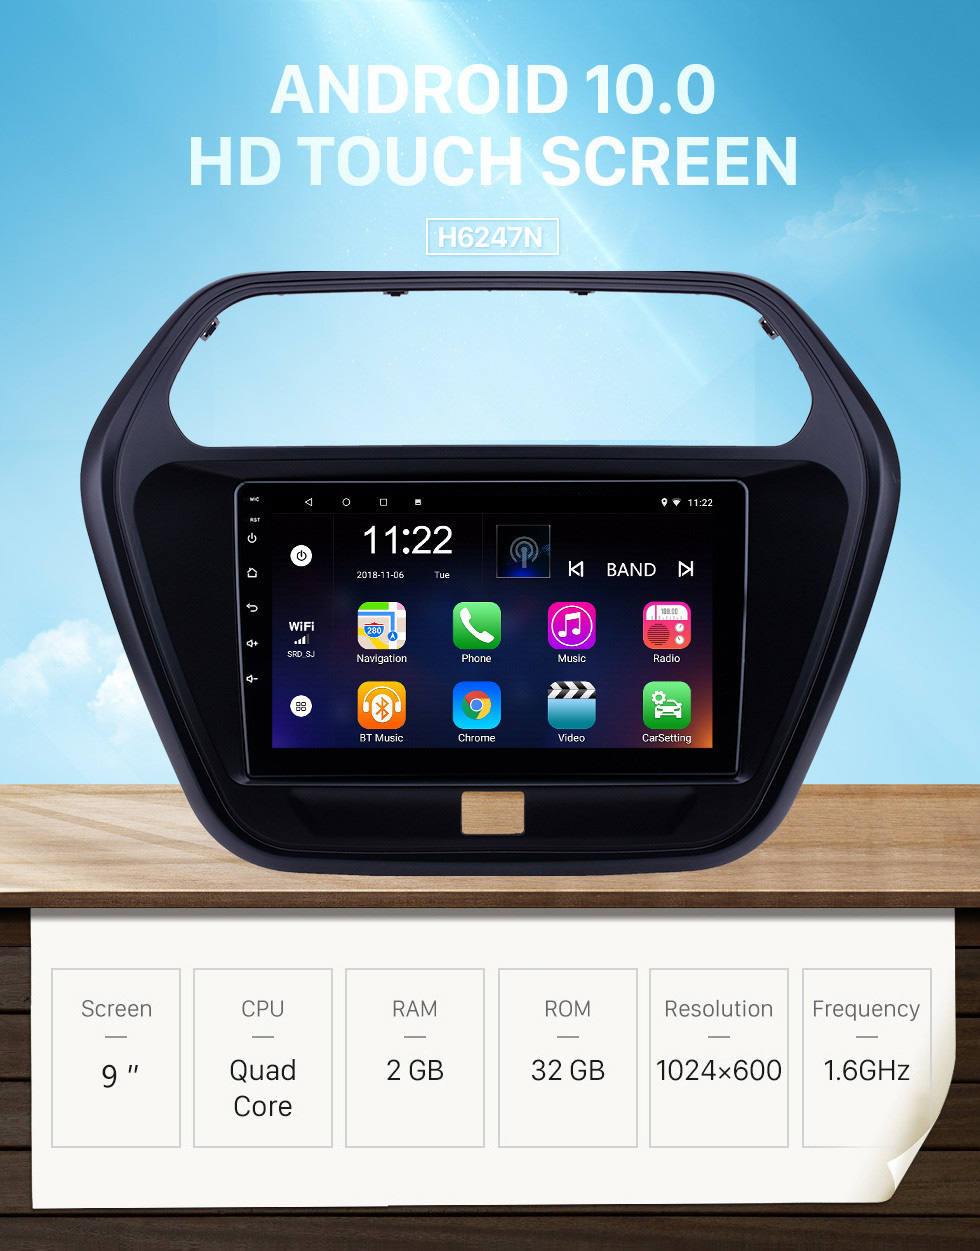 Seicane 2015 Mahindra TUV300 Android 10.0 Touchscreen 9 inch Head Unit Bluetooth GPS Navigation Radio with AUX WIFI support OBD2 DVR SWC Carplay